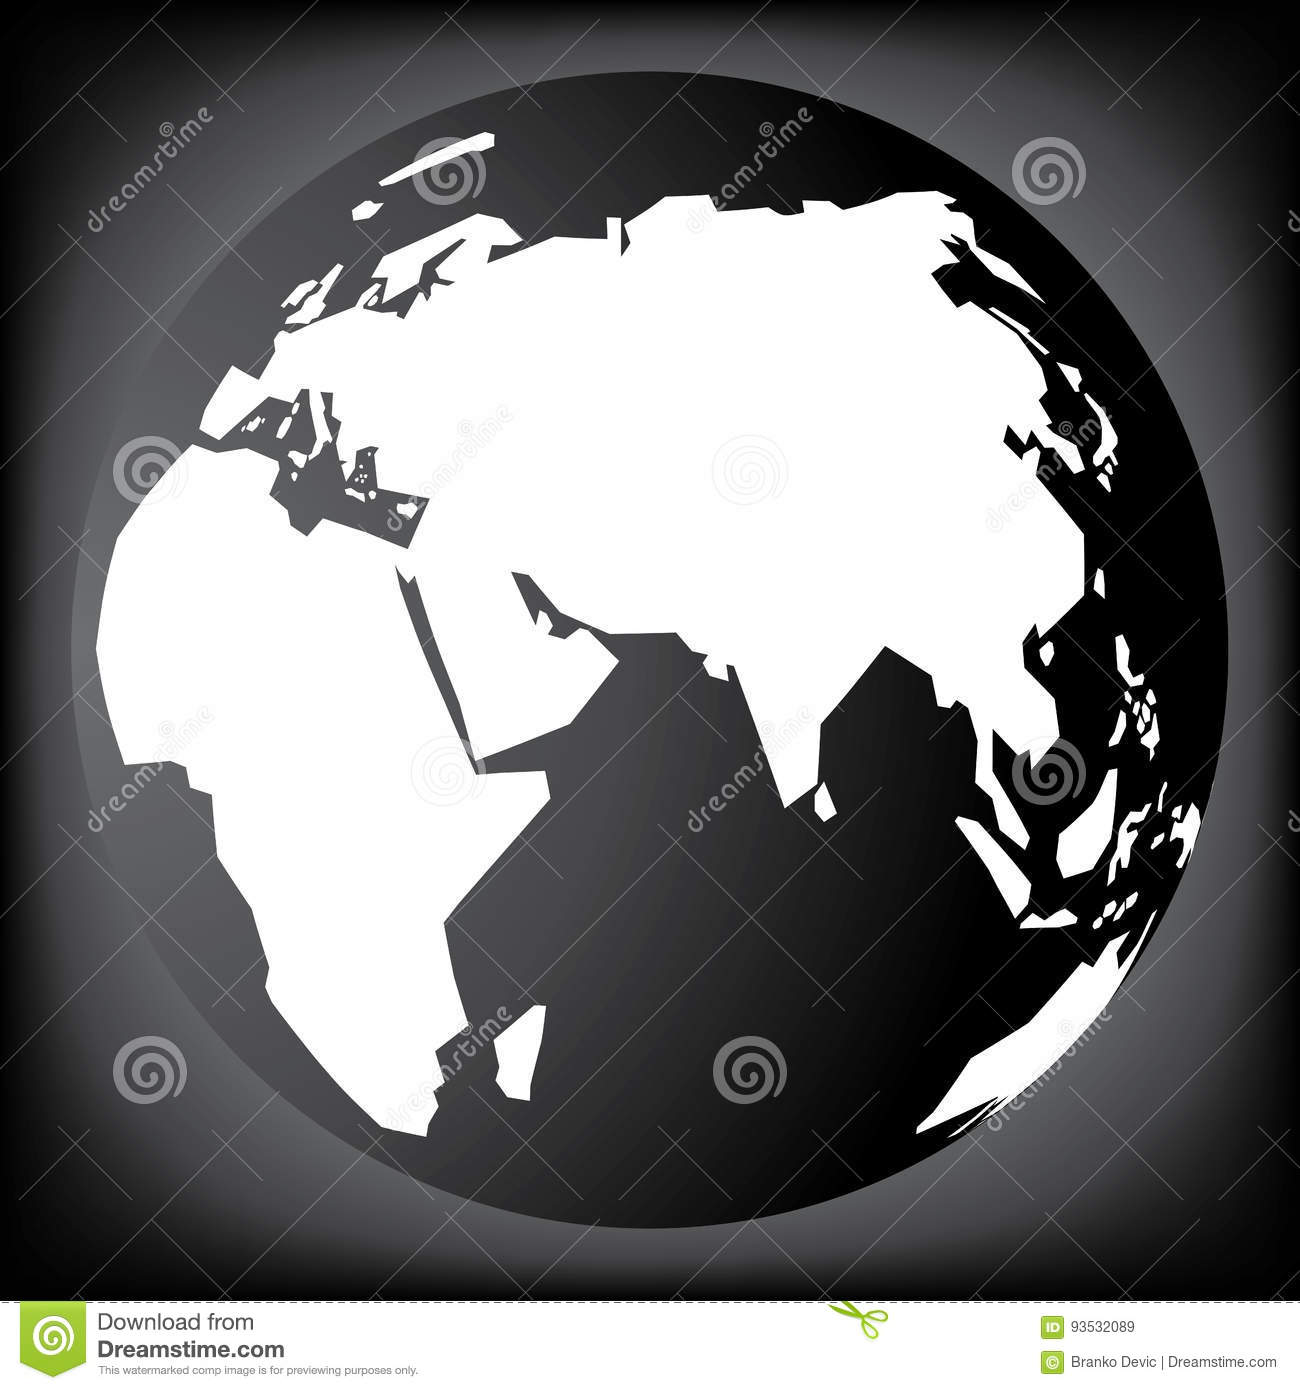 Black and white planet earth